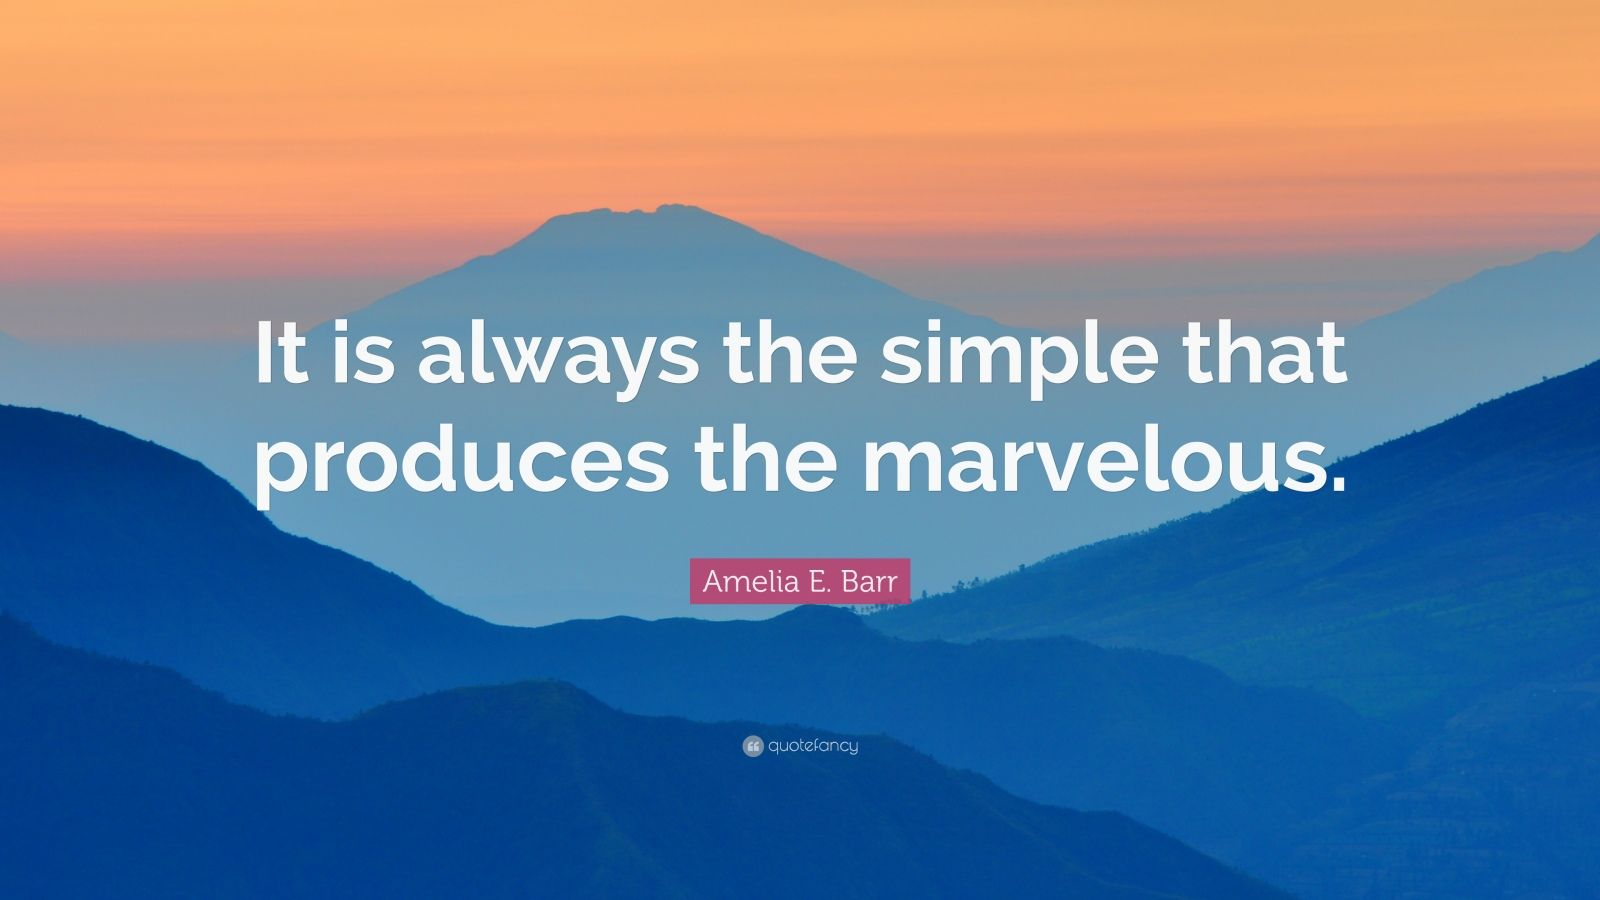 """Amelia E. Barr Quote: """"It is always the simple that produces the marvelous."""""""